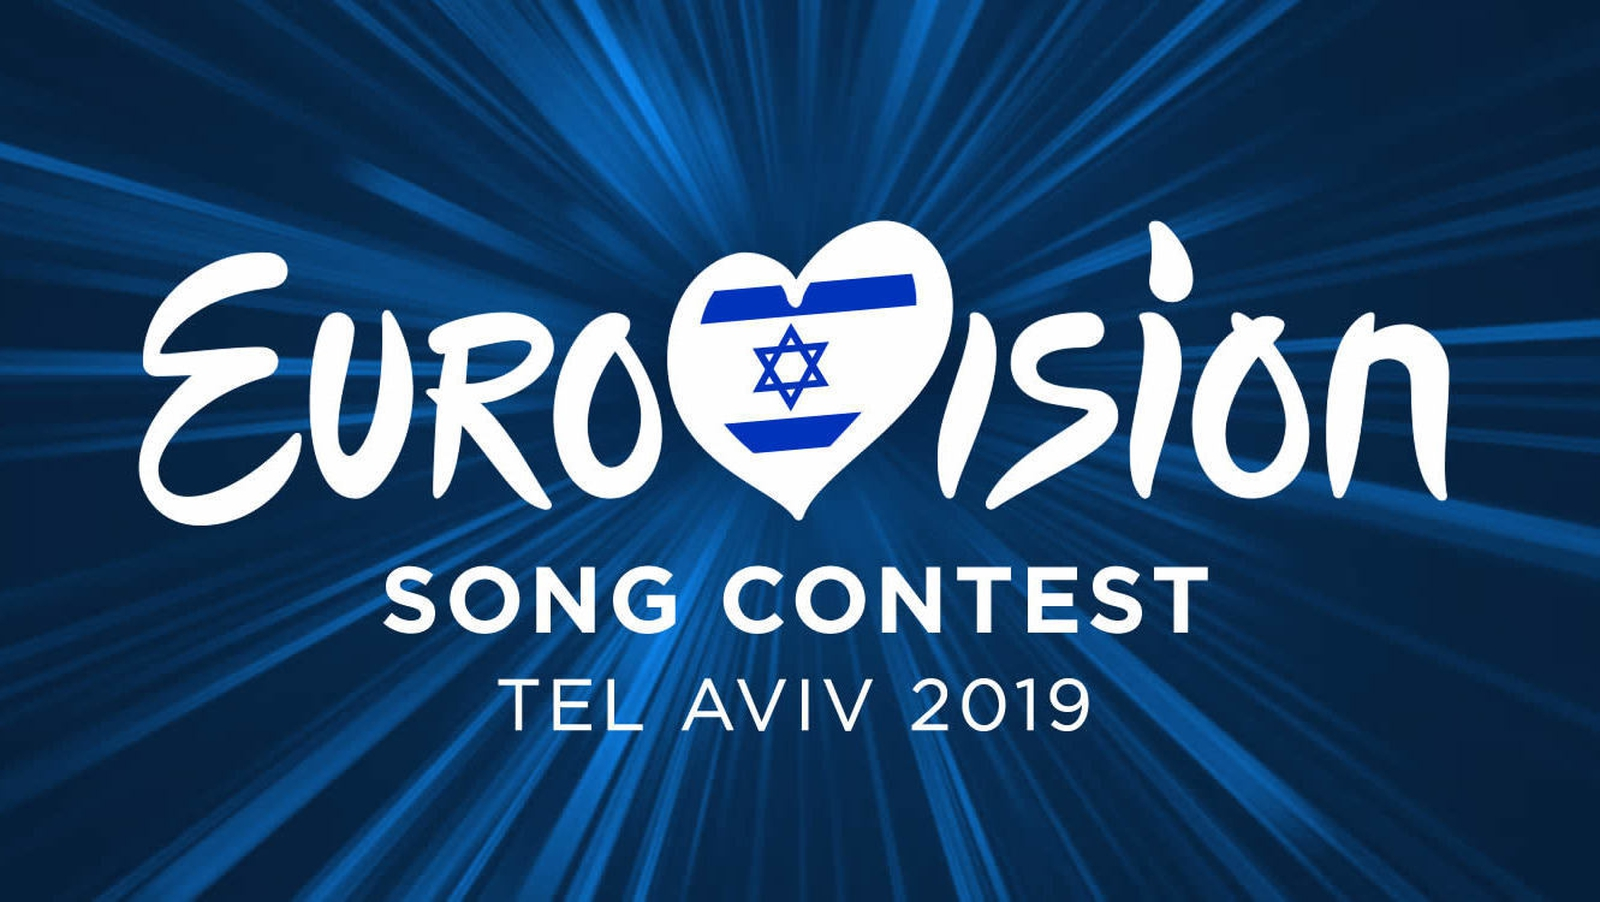 A guide to Eurovision 2019